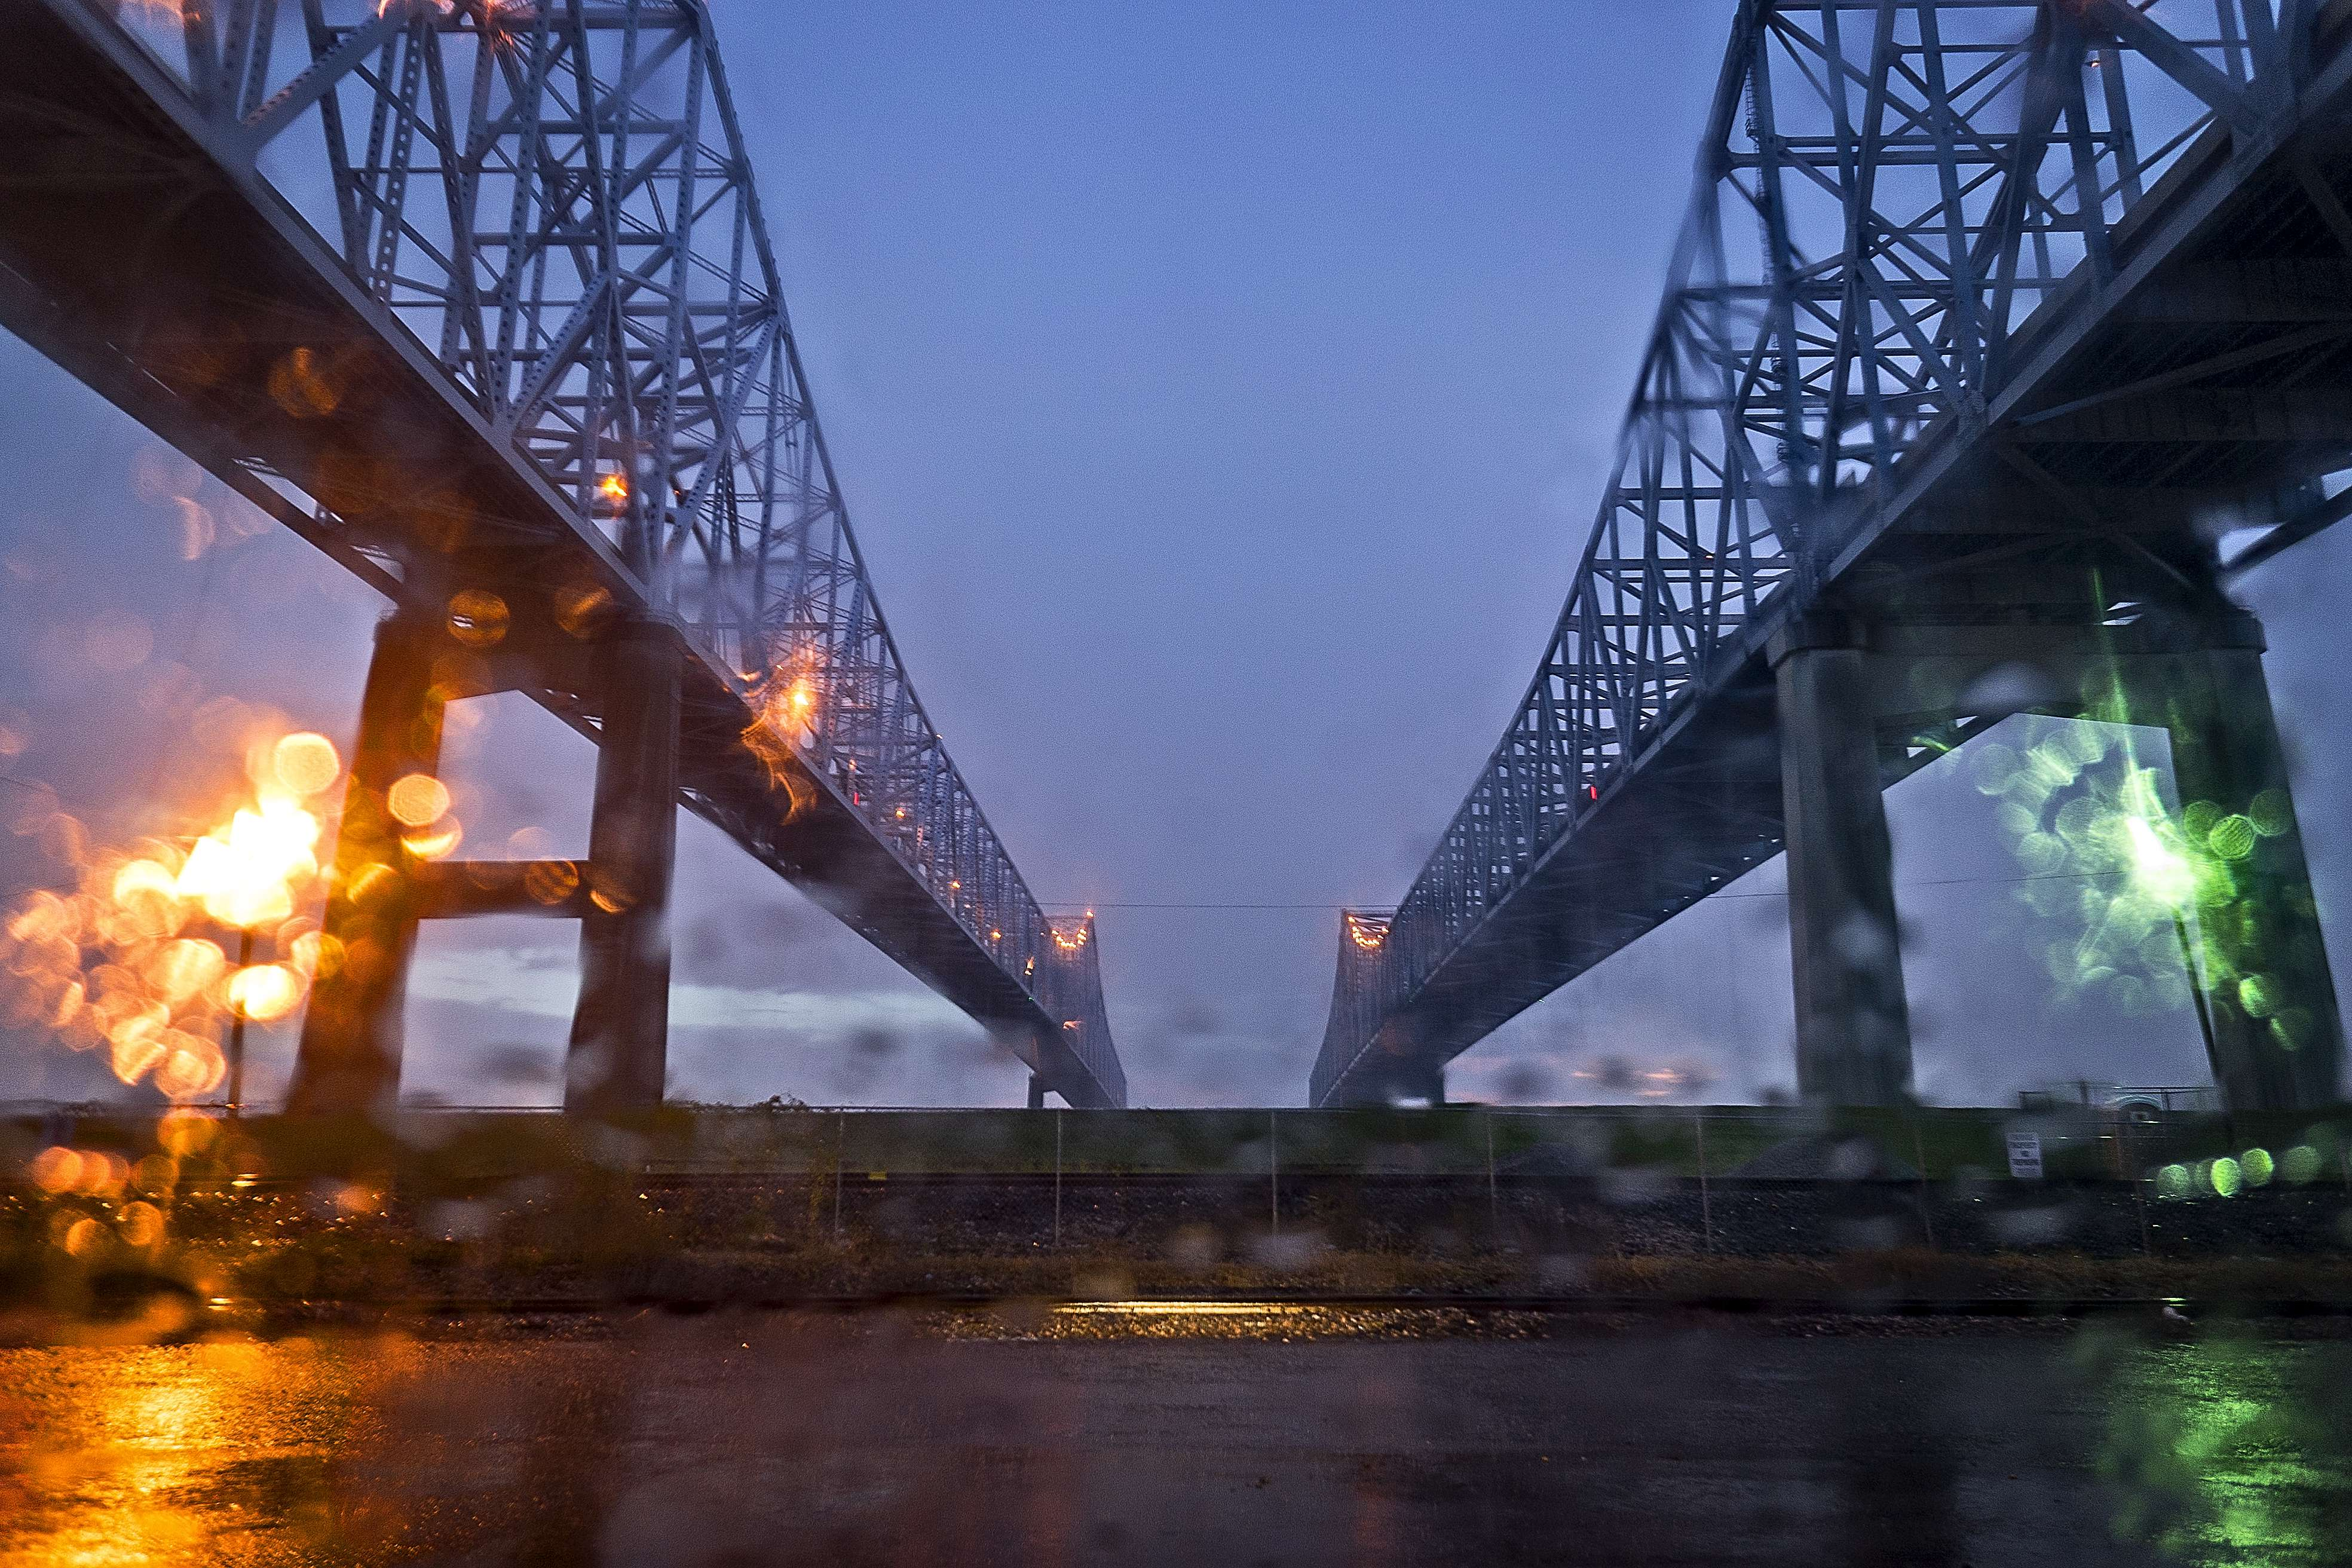 Crescent City Connection in the rain.